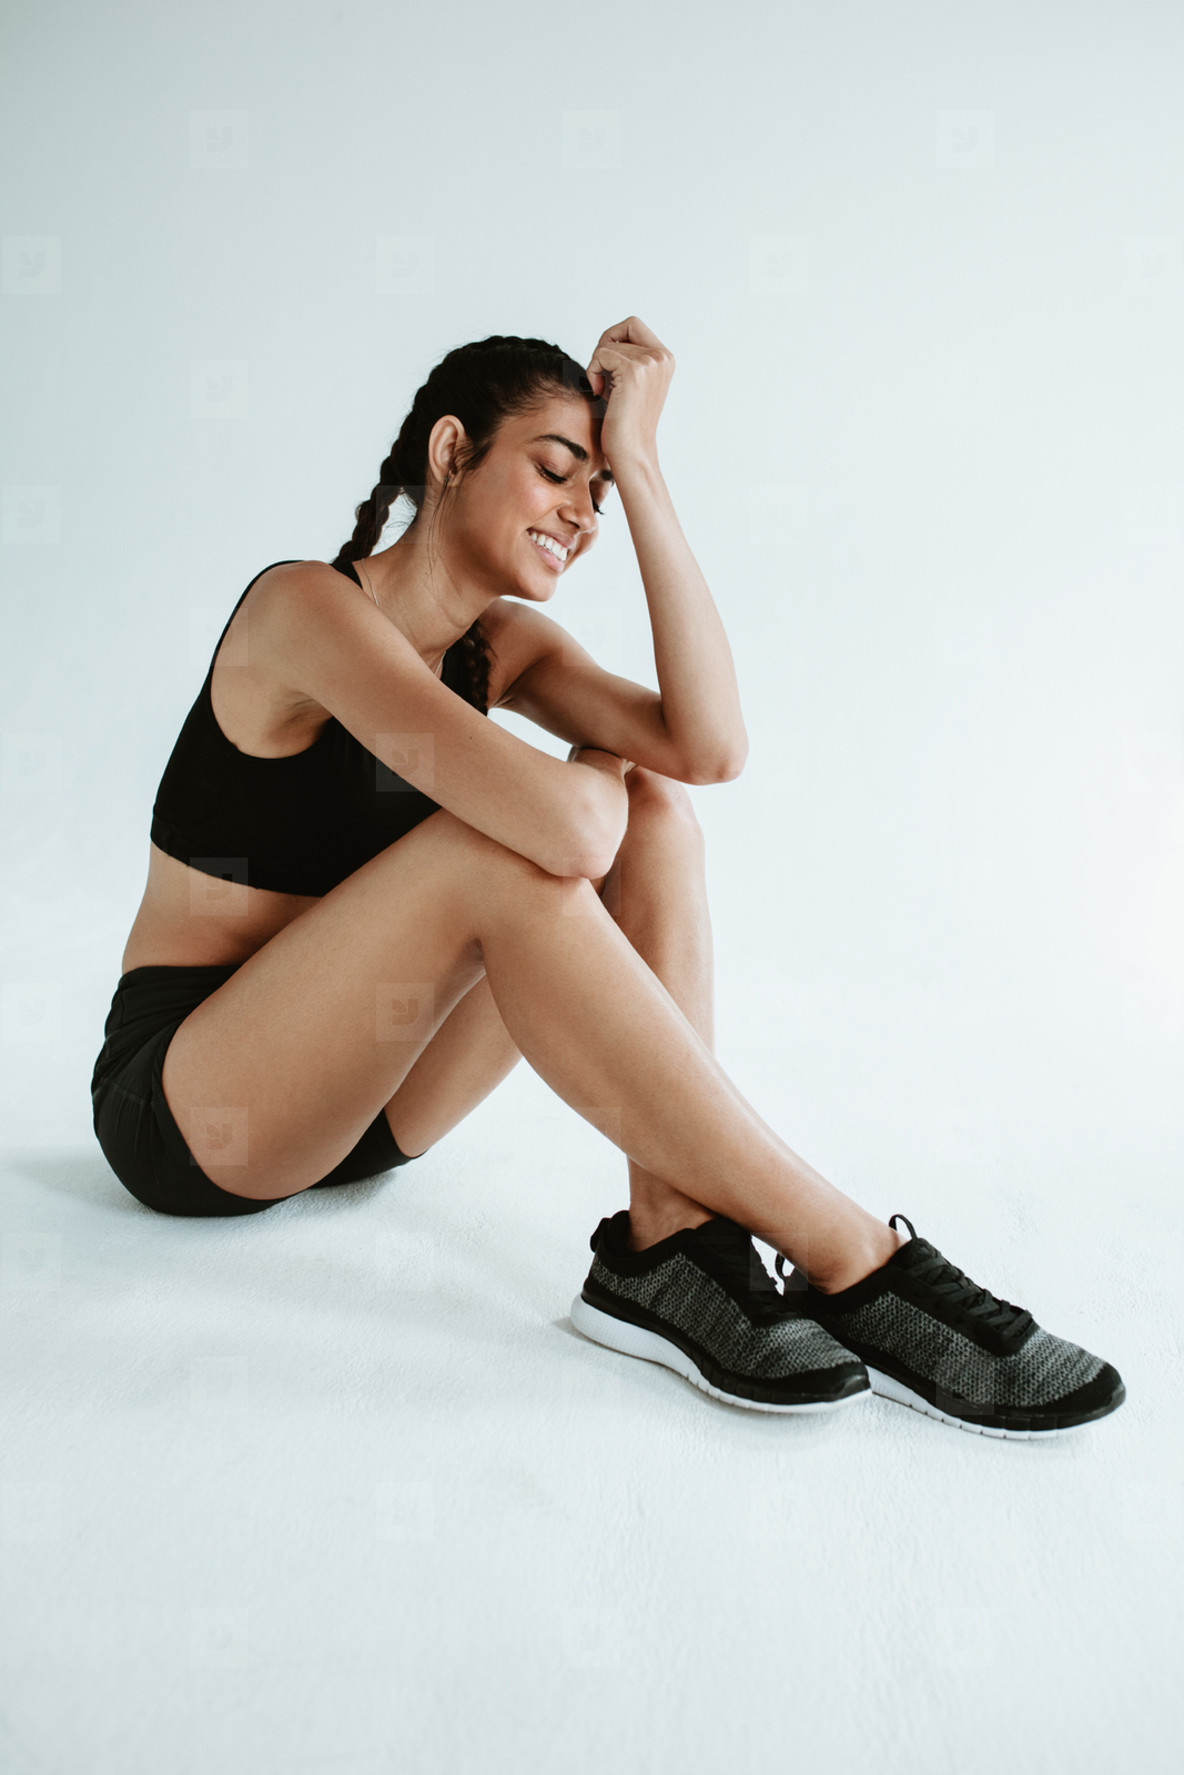 Athlete taking a break from sports training workout